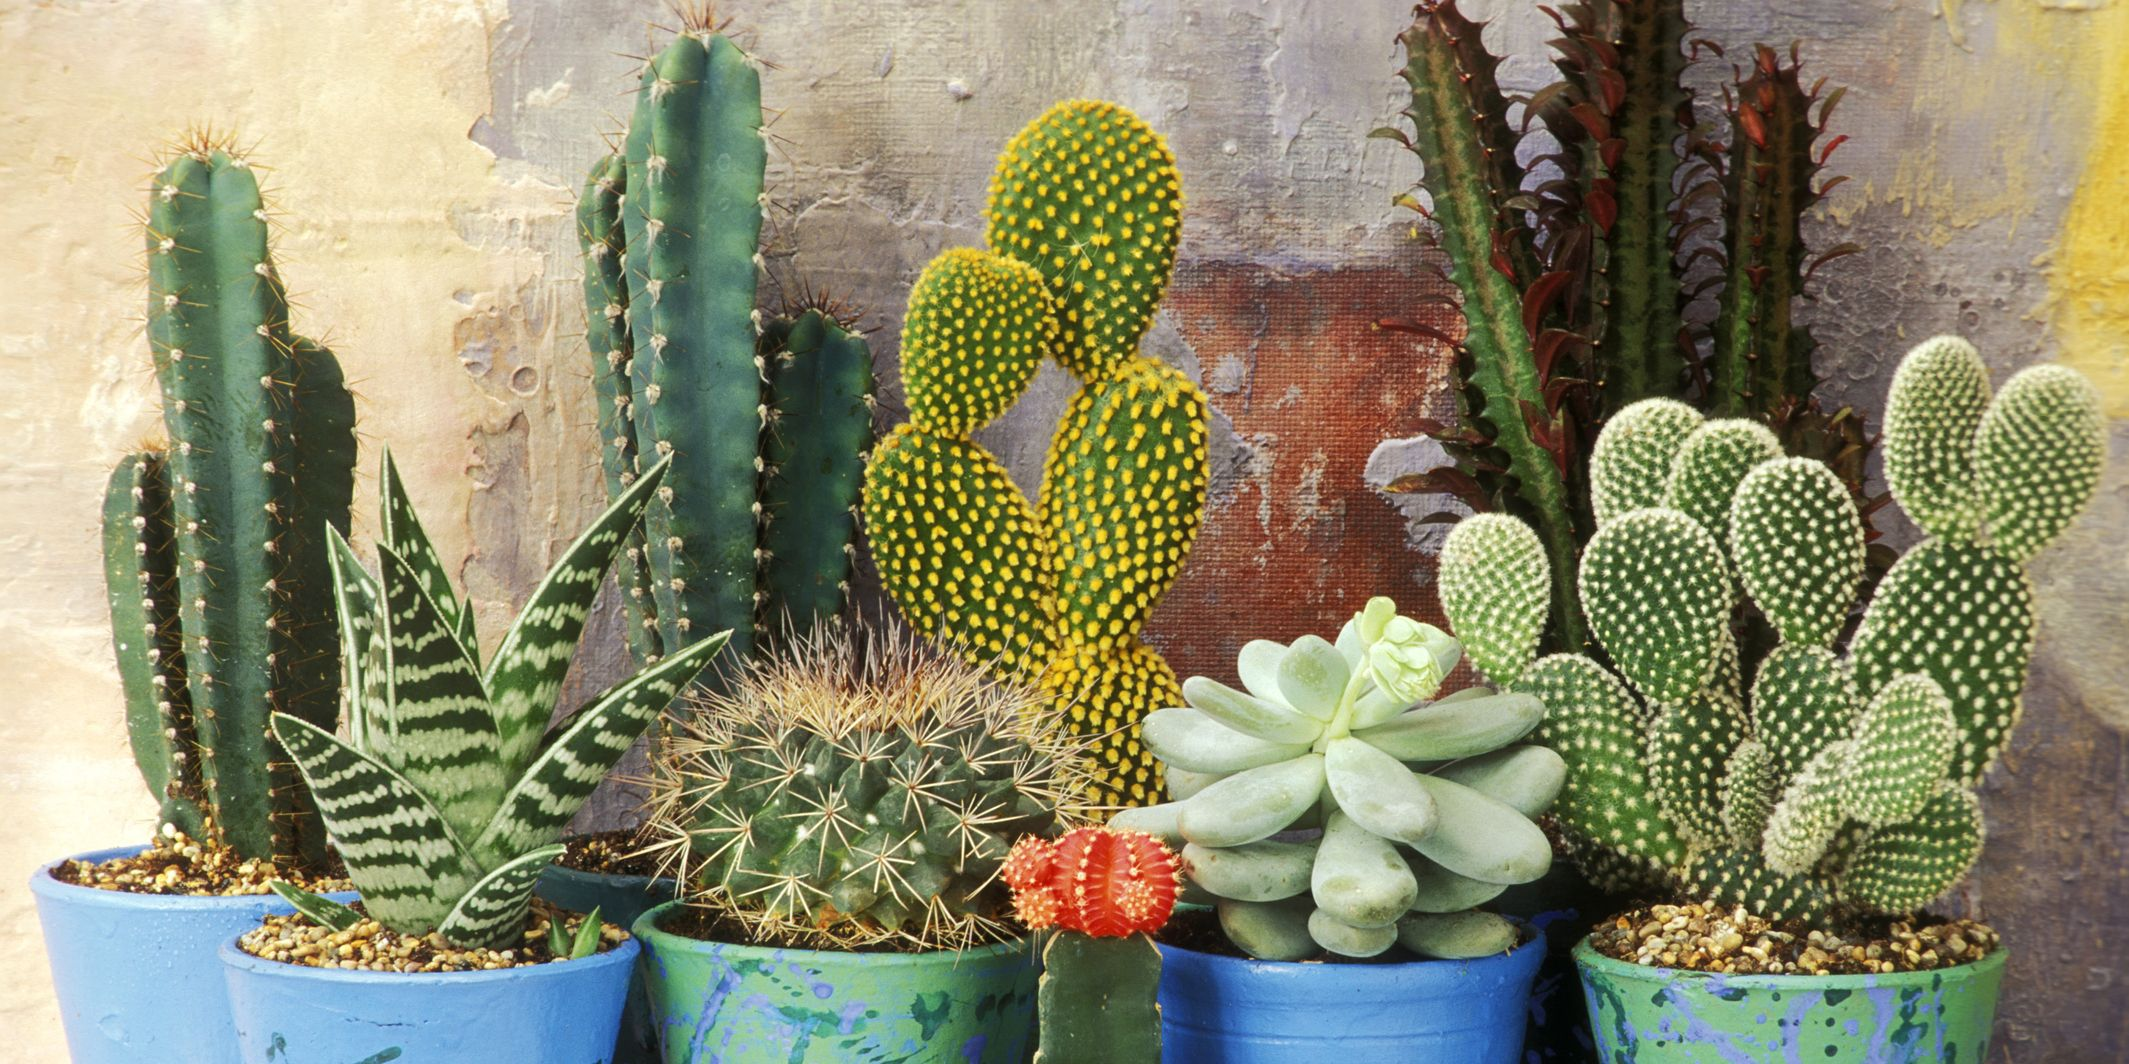 Mixed display of cacti and succulents